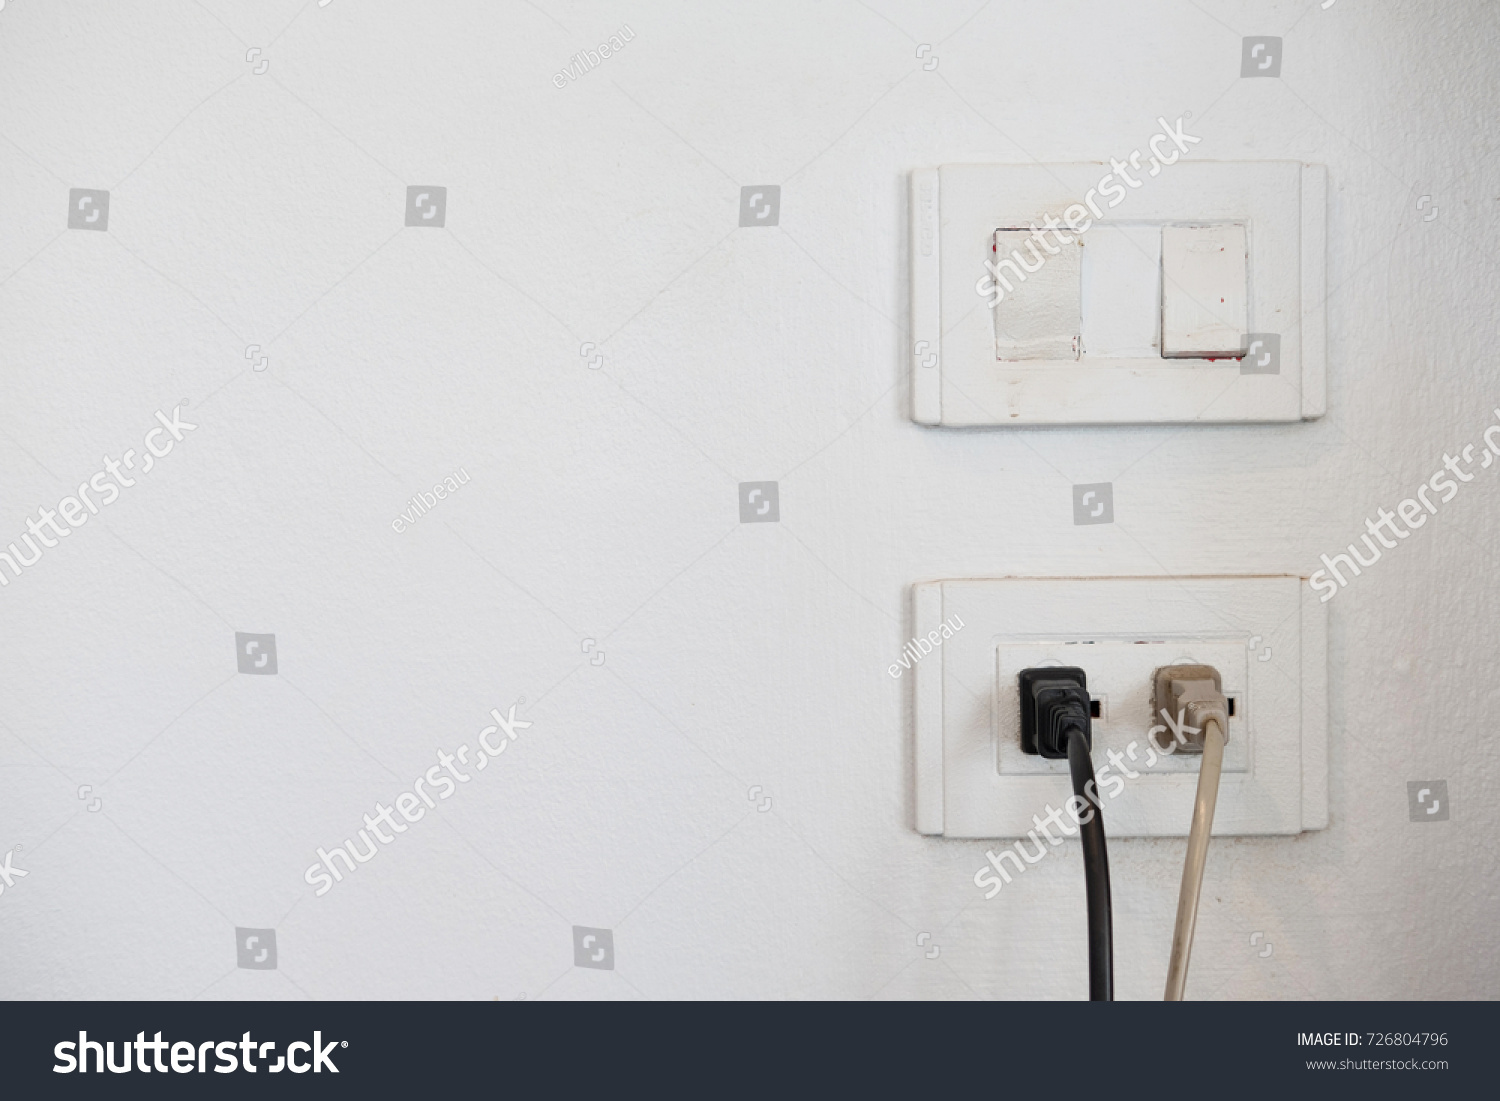 Electric Plug Socket On White Wall Stock Photo 726804796 ...